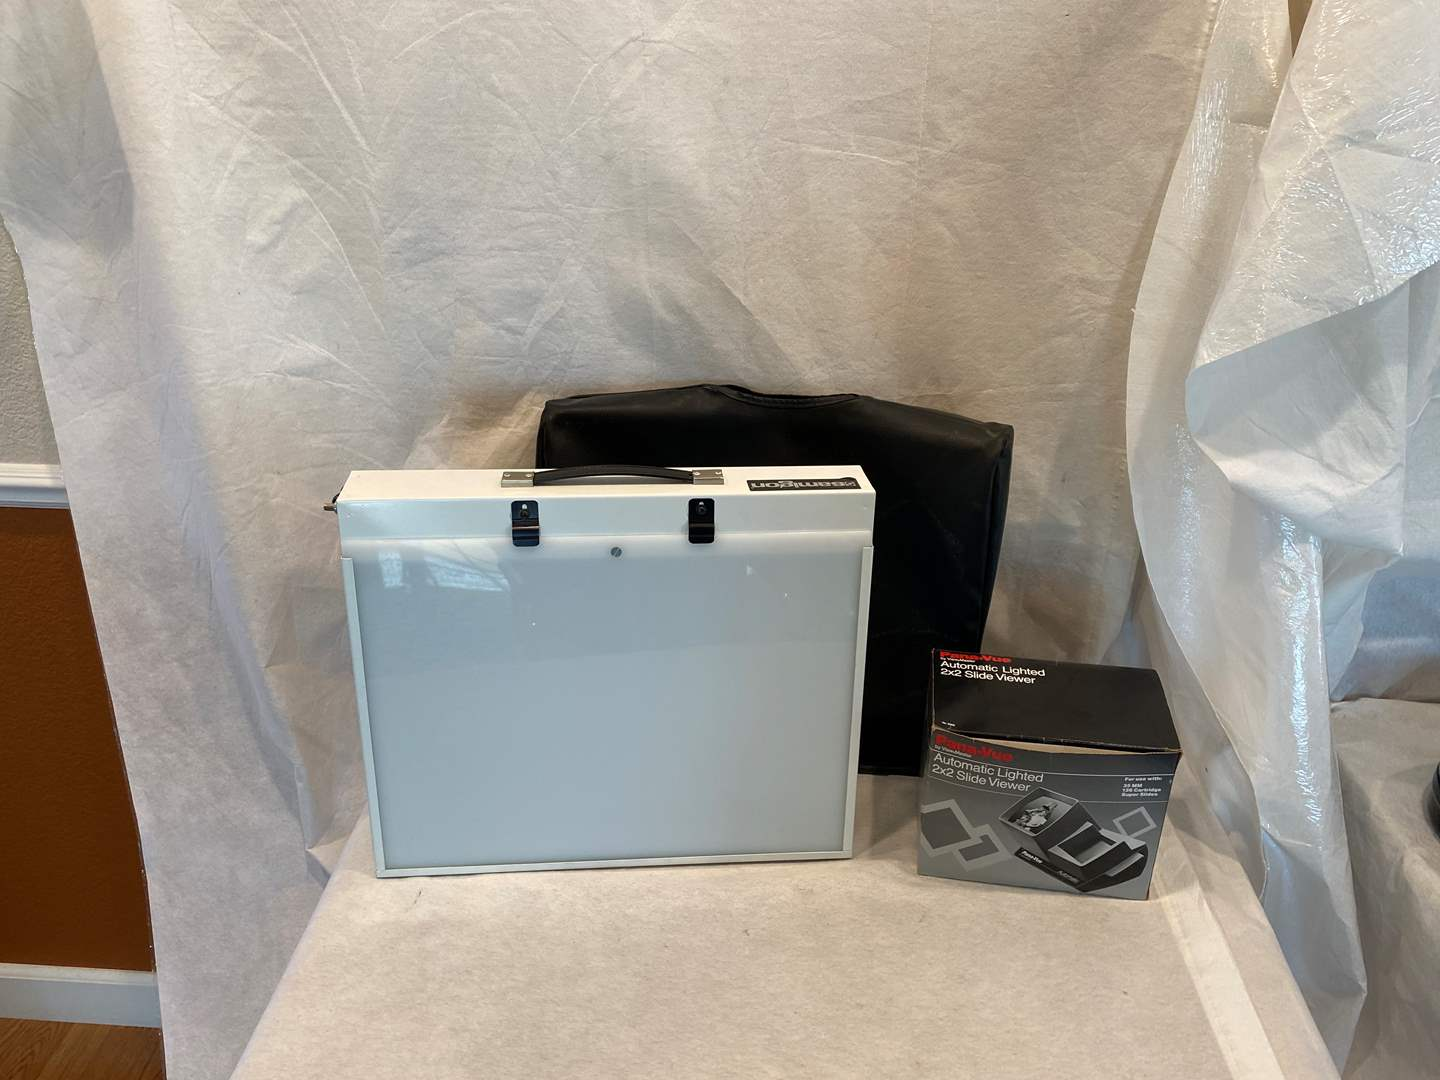 Lot # 106 Pana-Vue Automatic Lighted 2x2 Slide Viewer(Untested) and Samigon Light Box (Works) (main image)